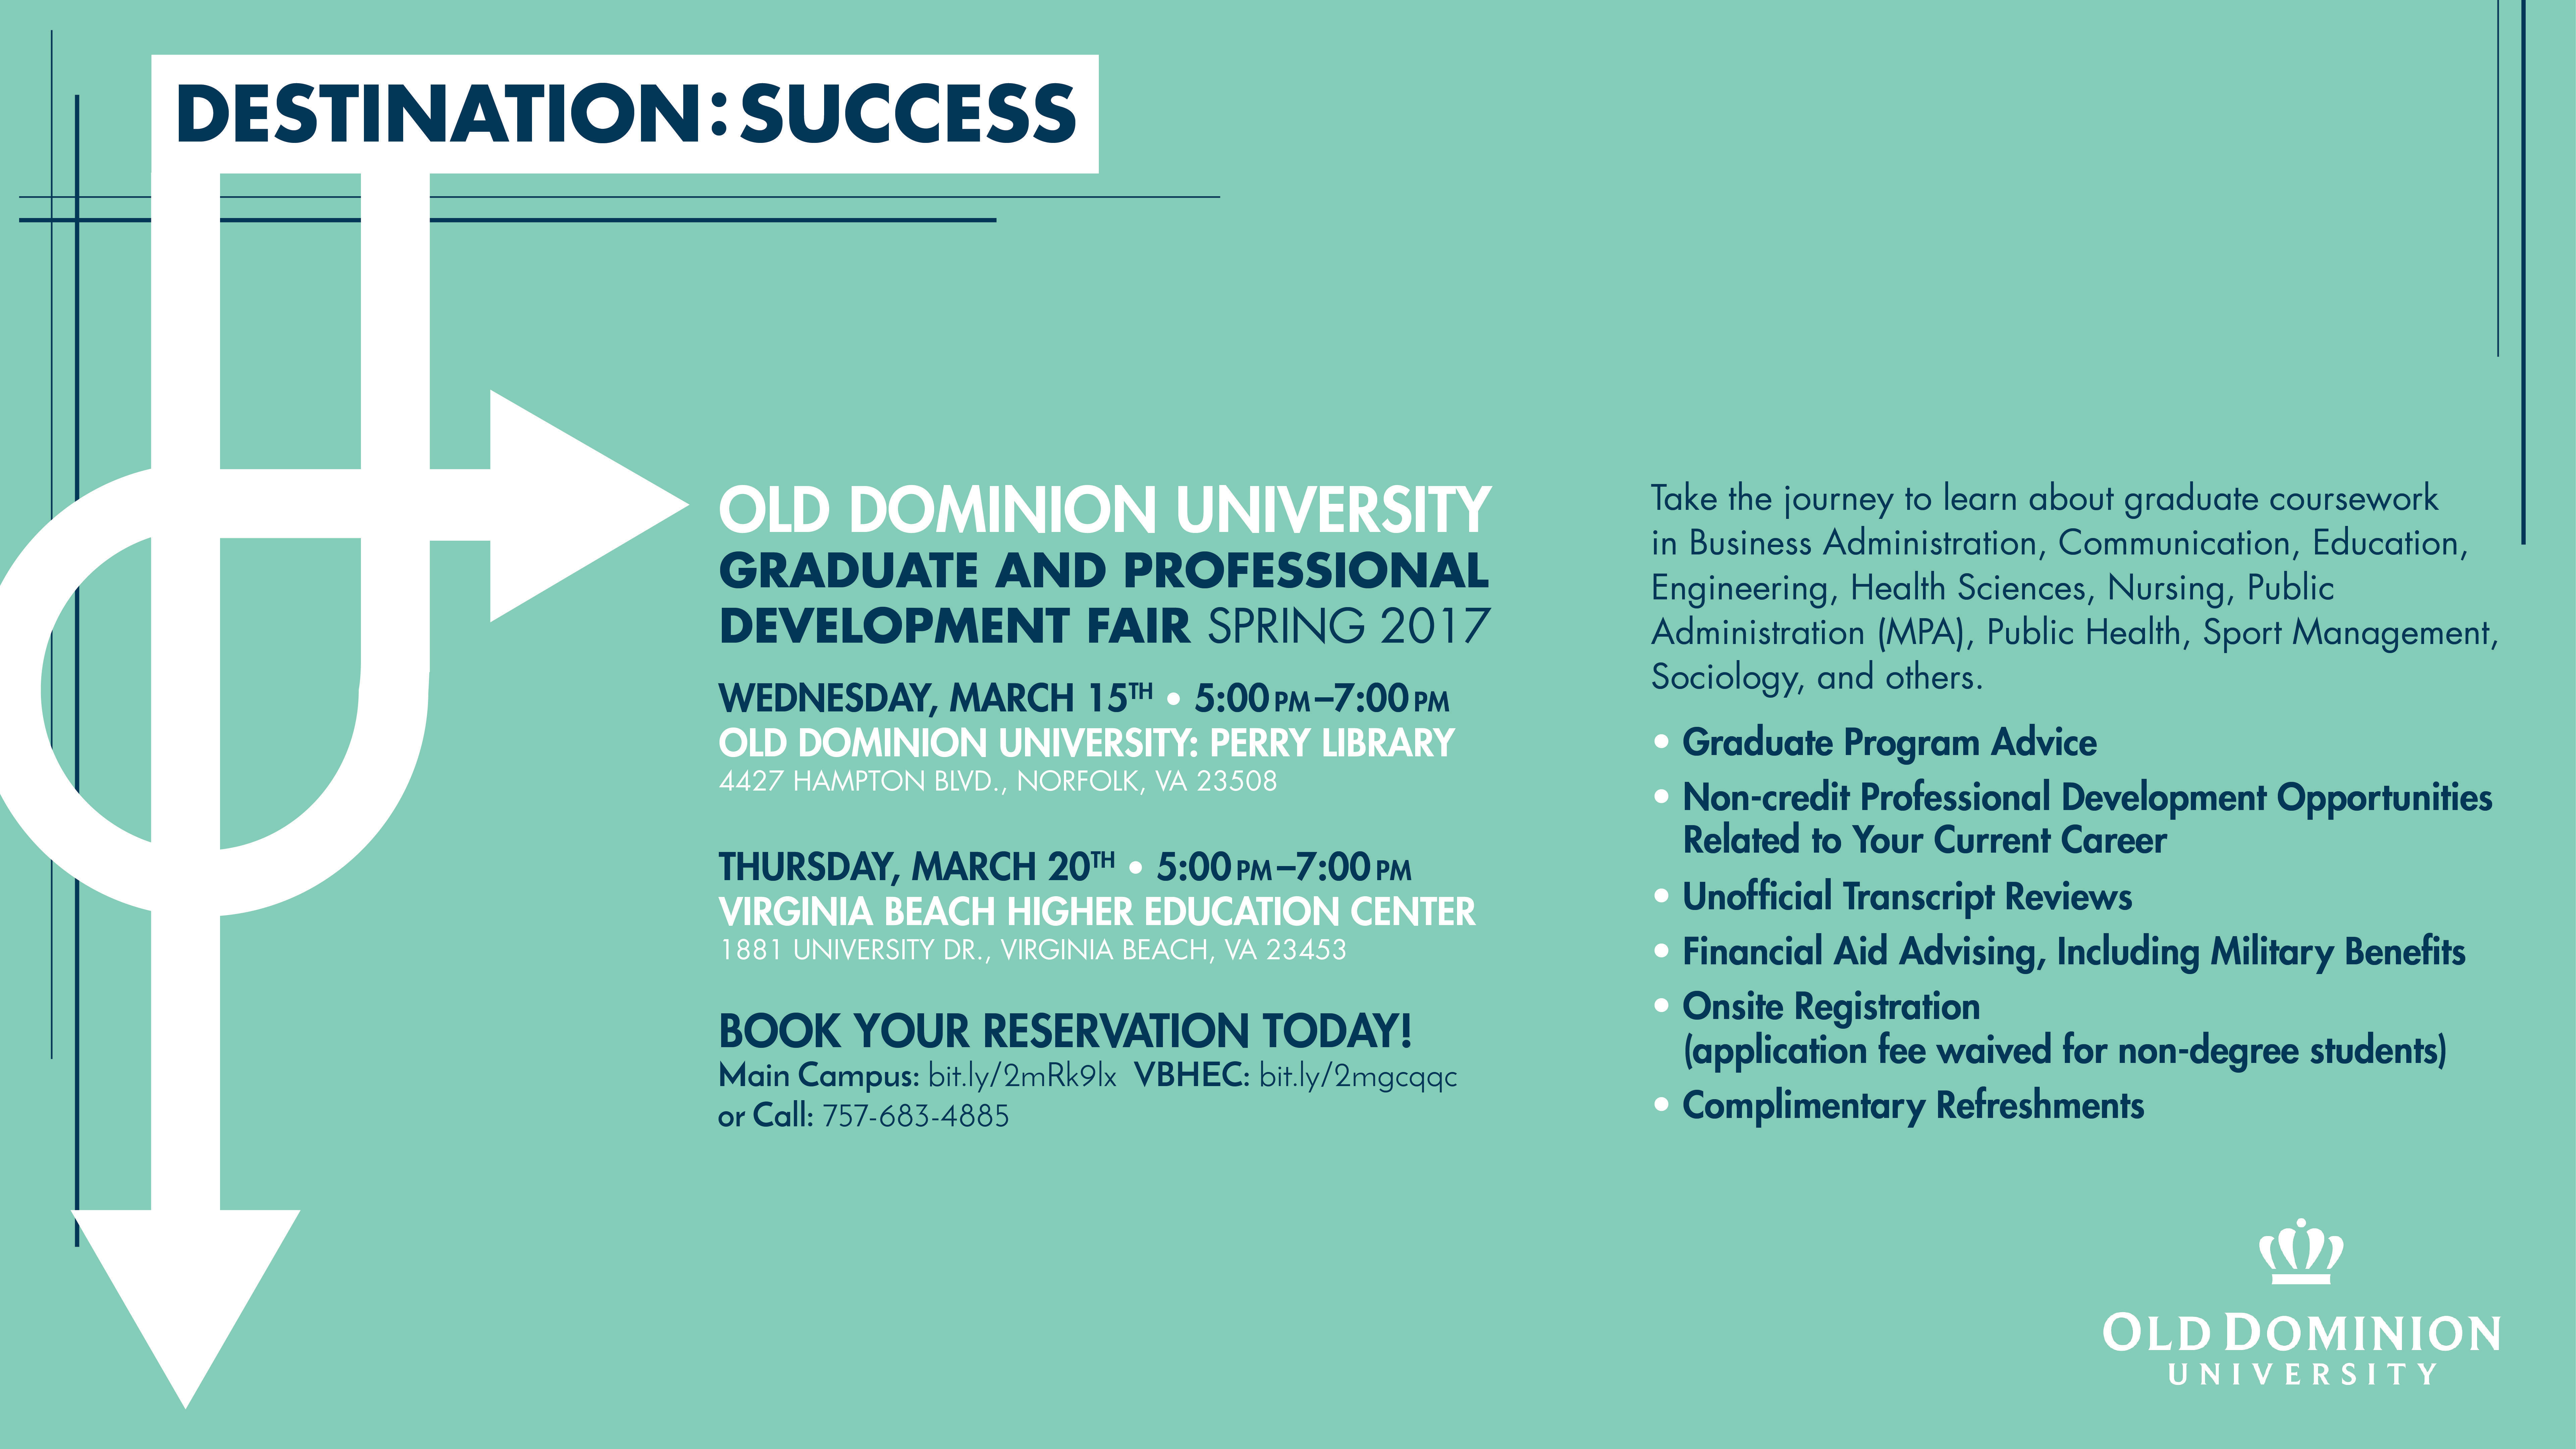 ODU Graduate & Professional Development Fairs